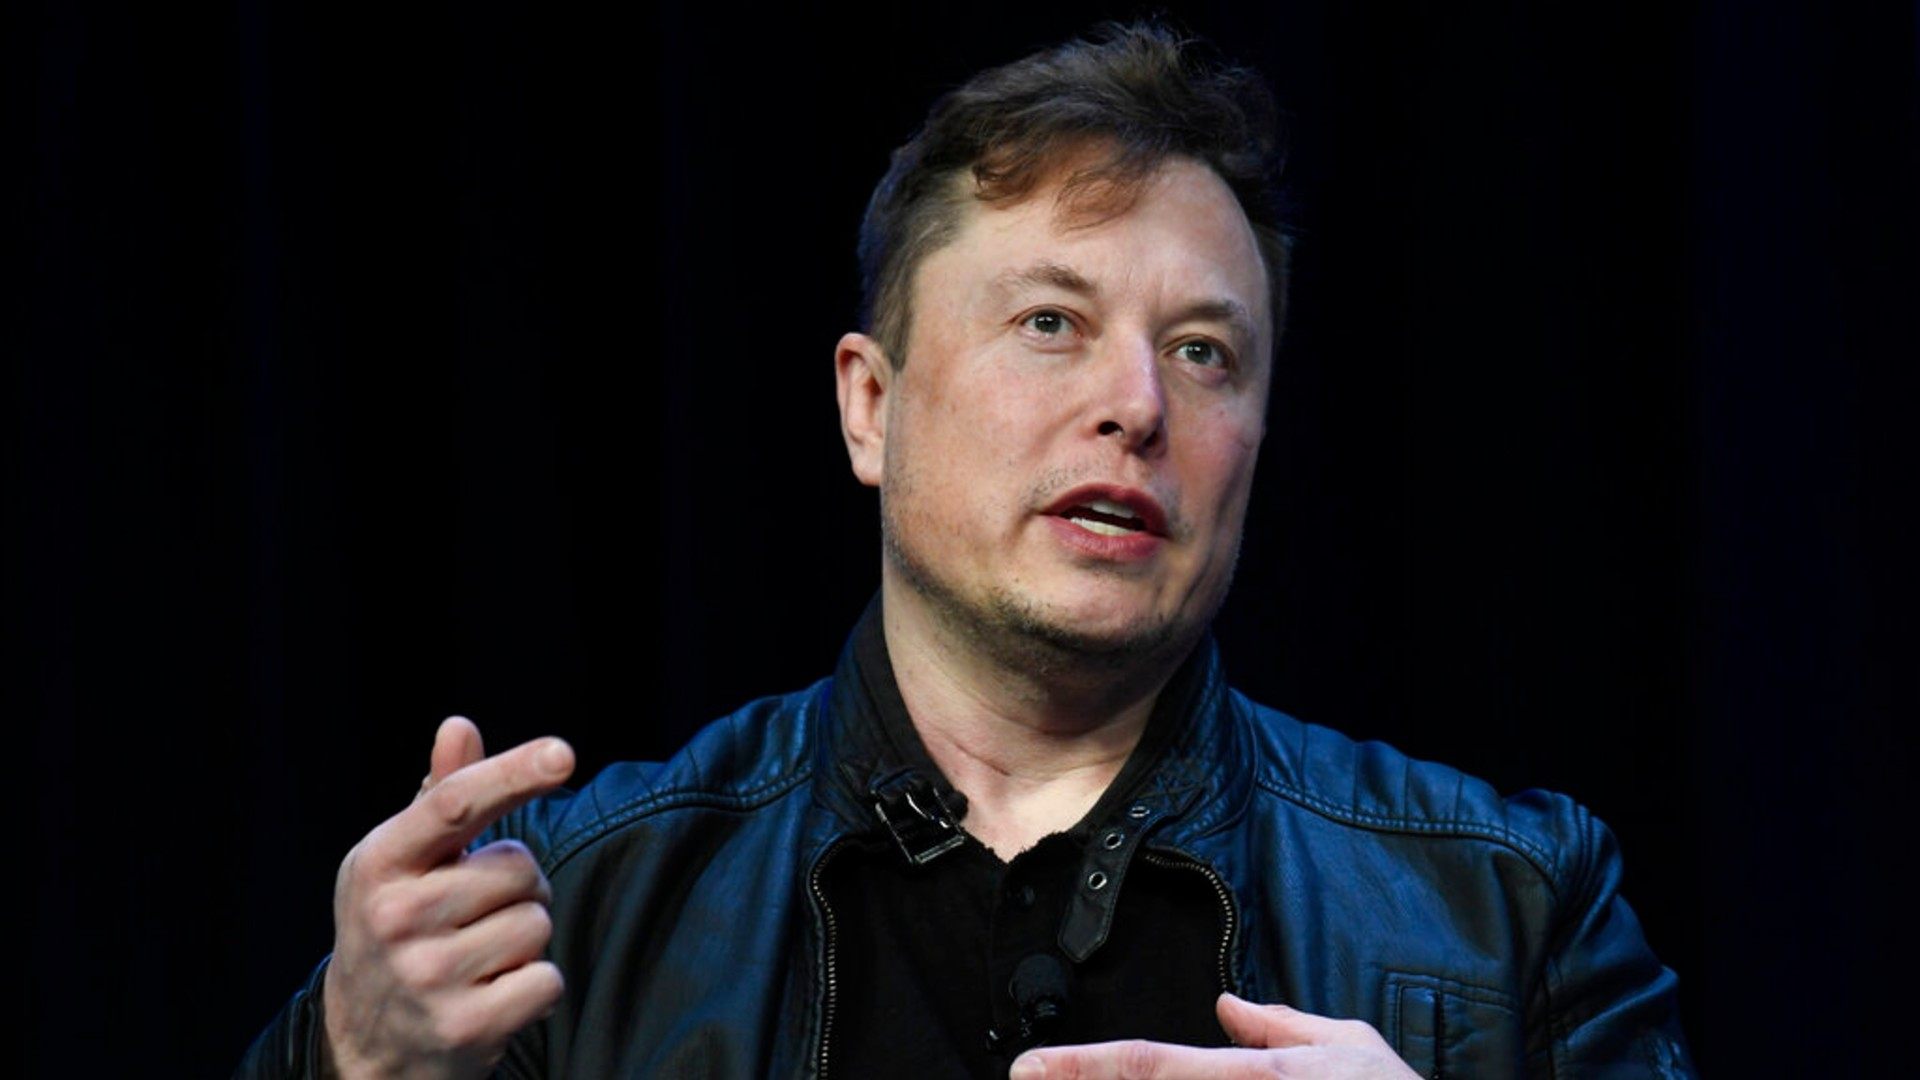 In this March 9, 2020 file photo, Tesla and SpaceX Chief Executive Officer Elon Musk speaks at the SATELLITE Conference and Exhibition in Washington. (AP Photo/Susan Walsh, File)